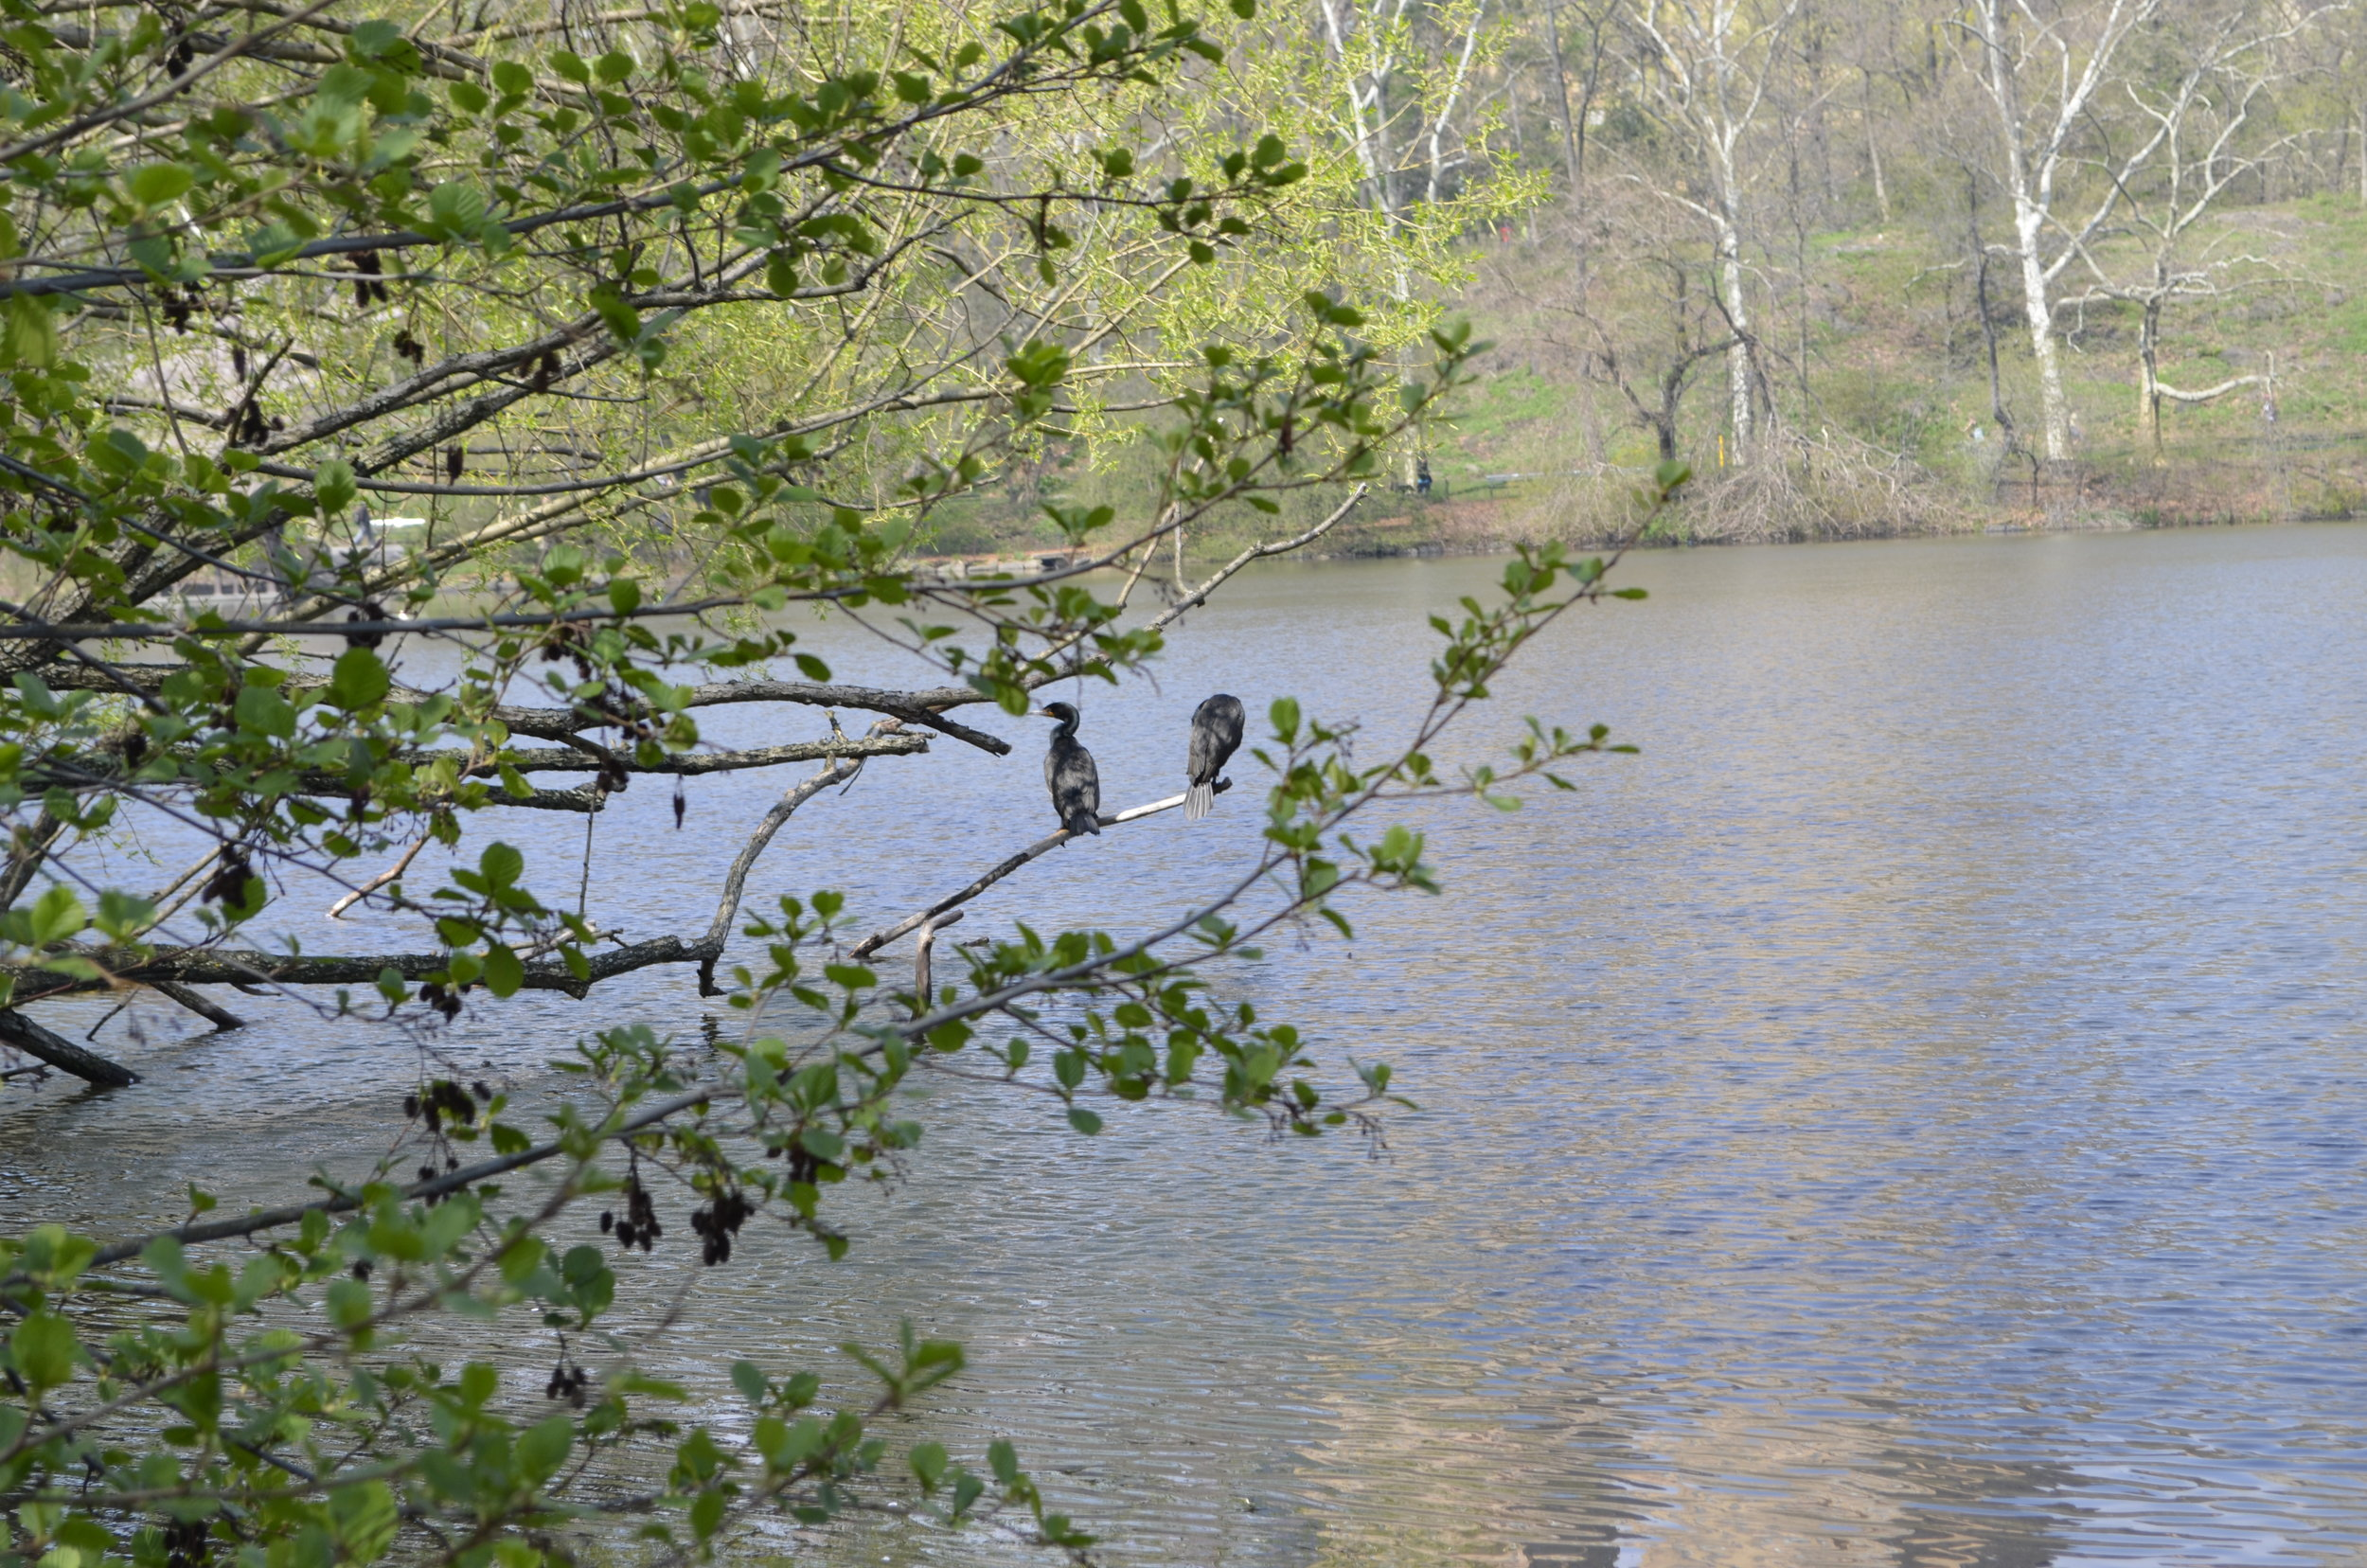 Two Cormorants observed during the walk.